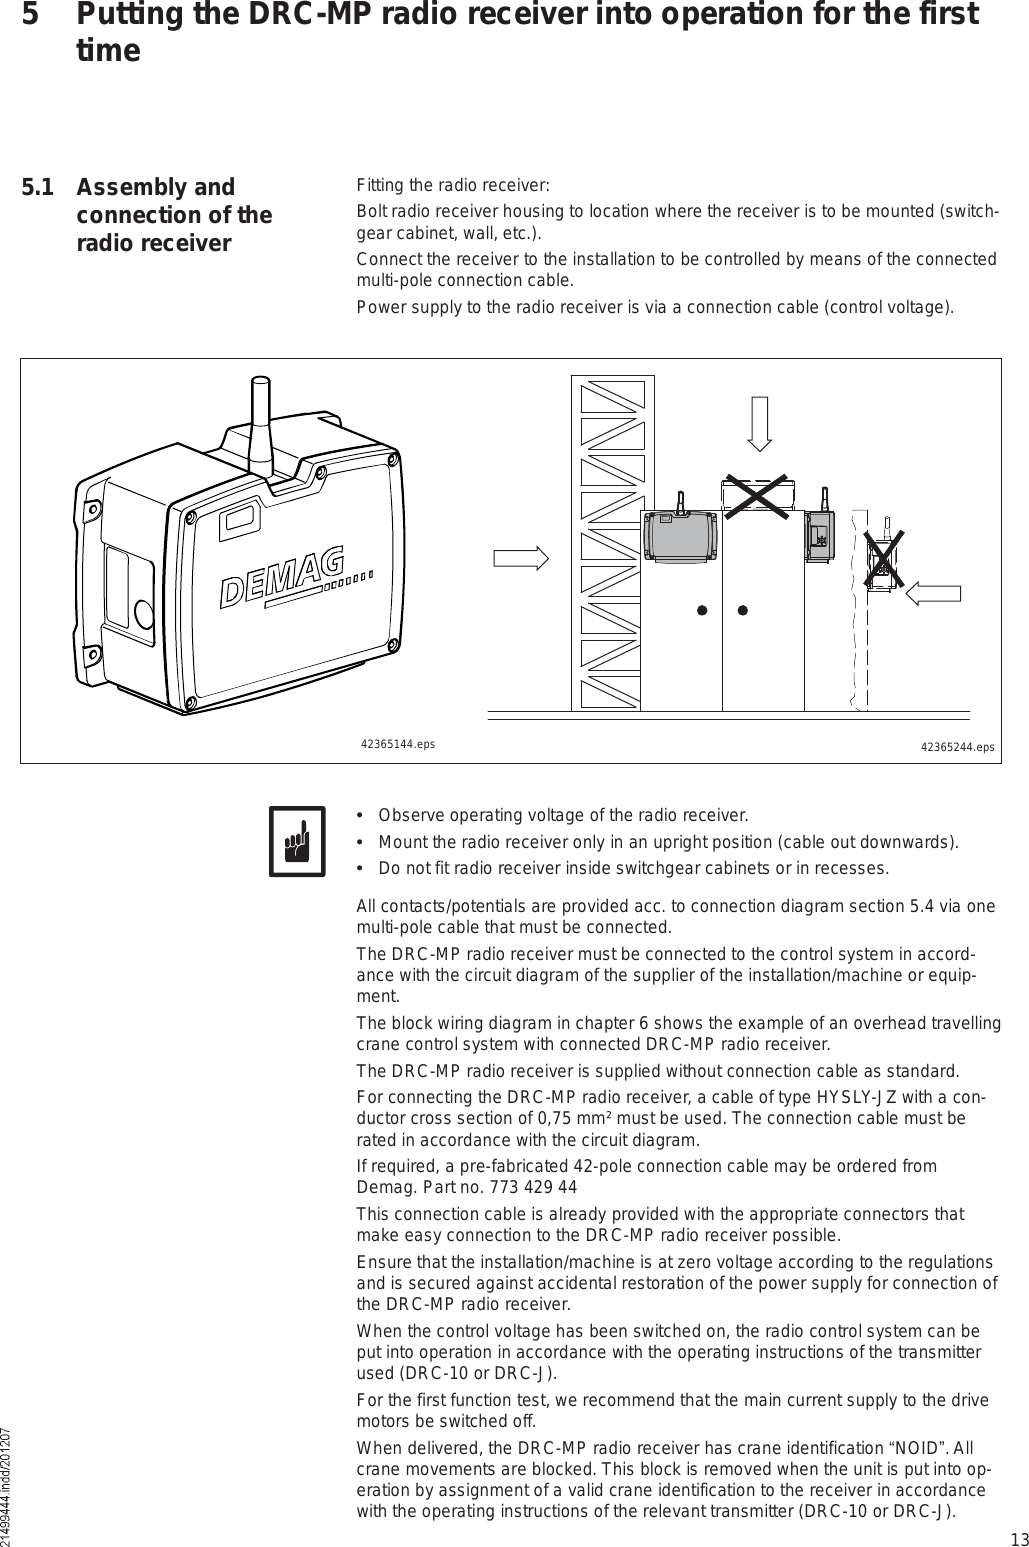 Scanreco D2mptr03fh917 Receiver User Manual Drc Mp Radio Transmitter Circuit Diagram 13fitting The Receiverbolt Housing To Location Where Is